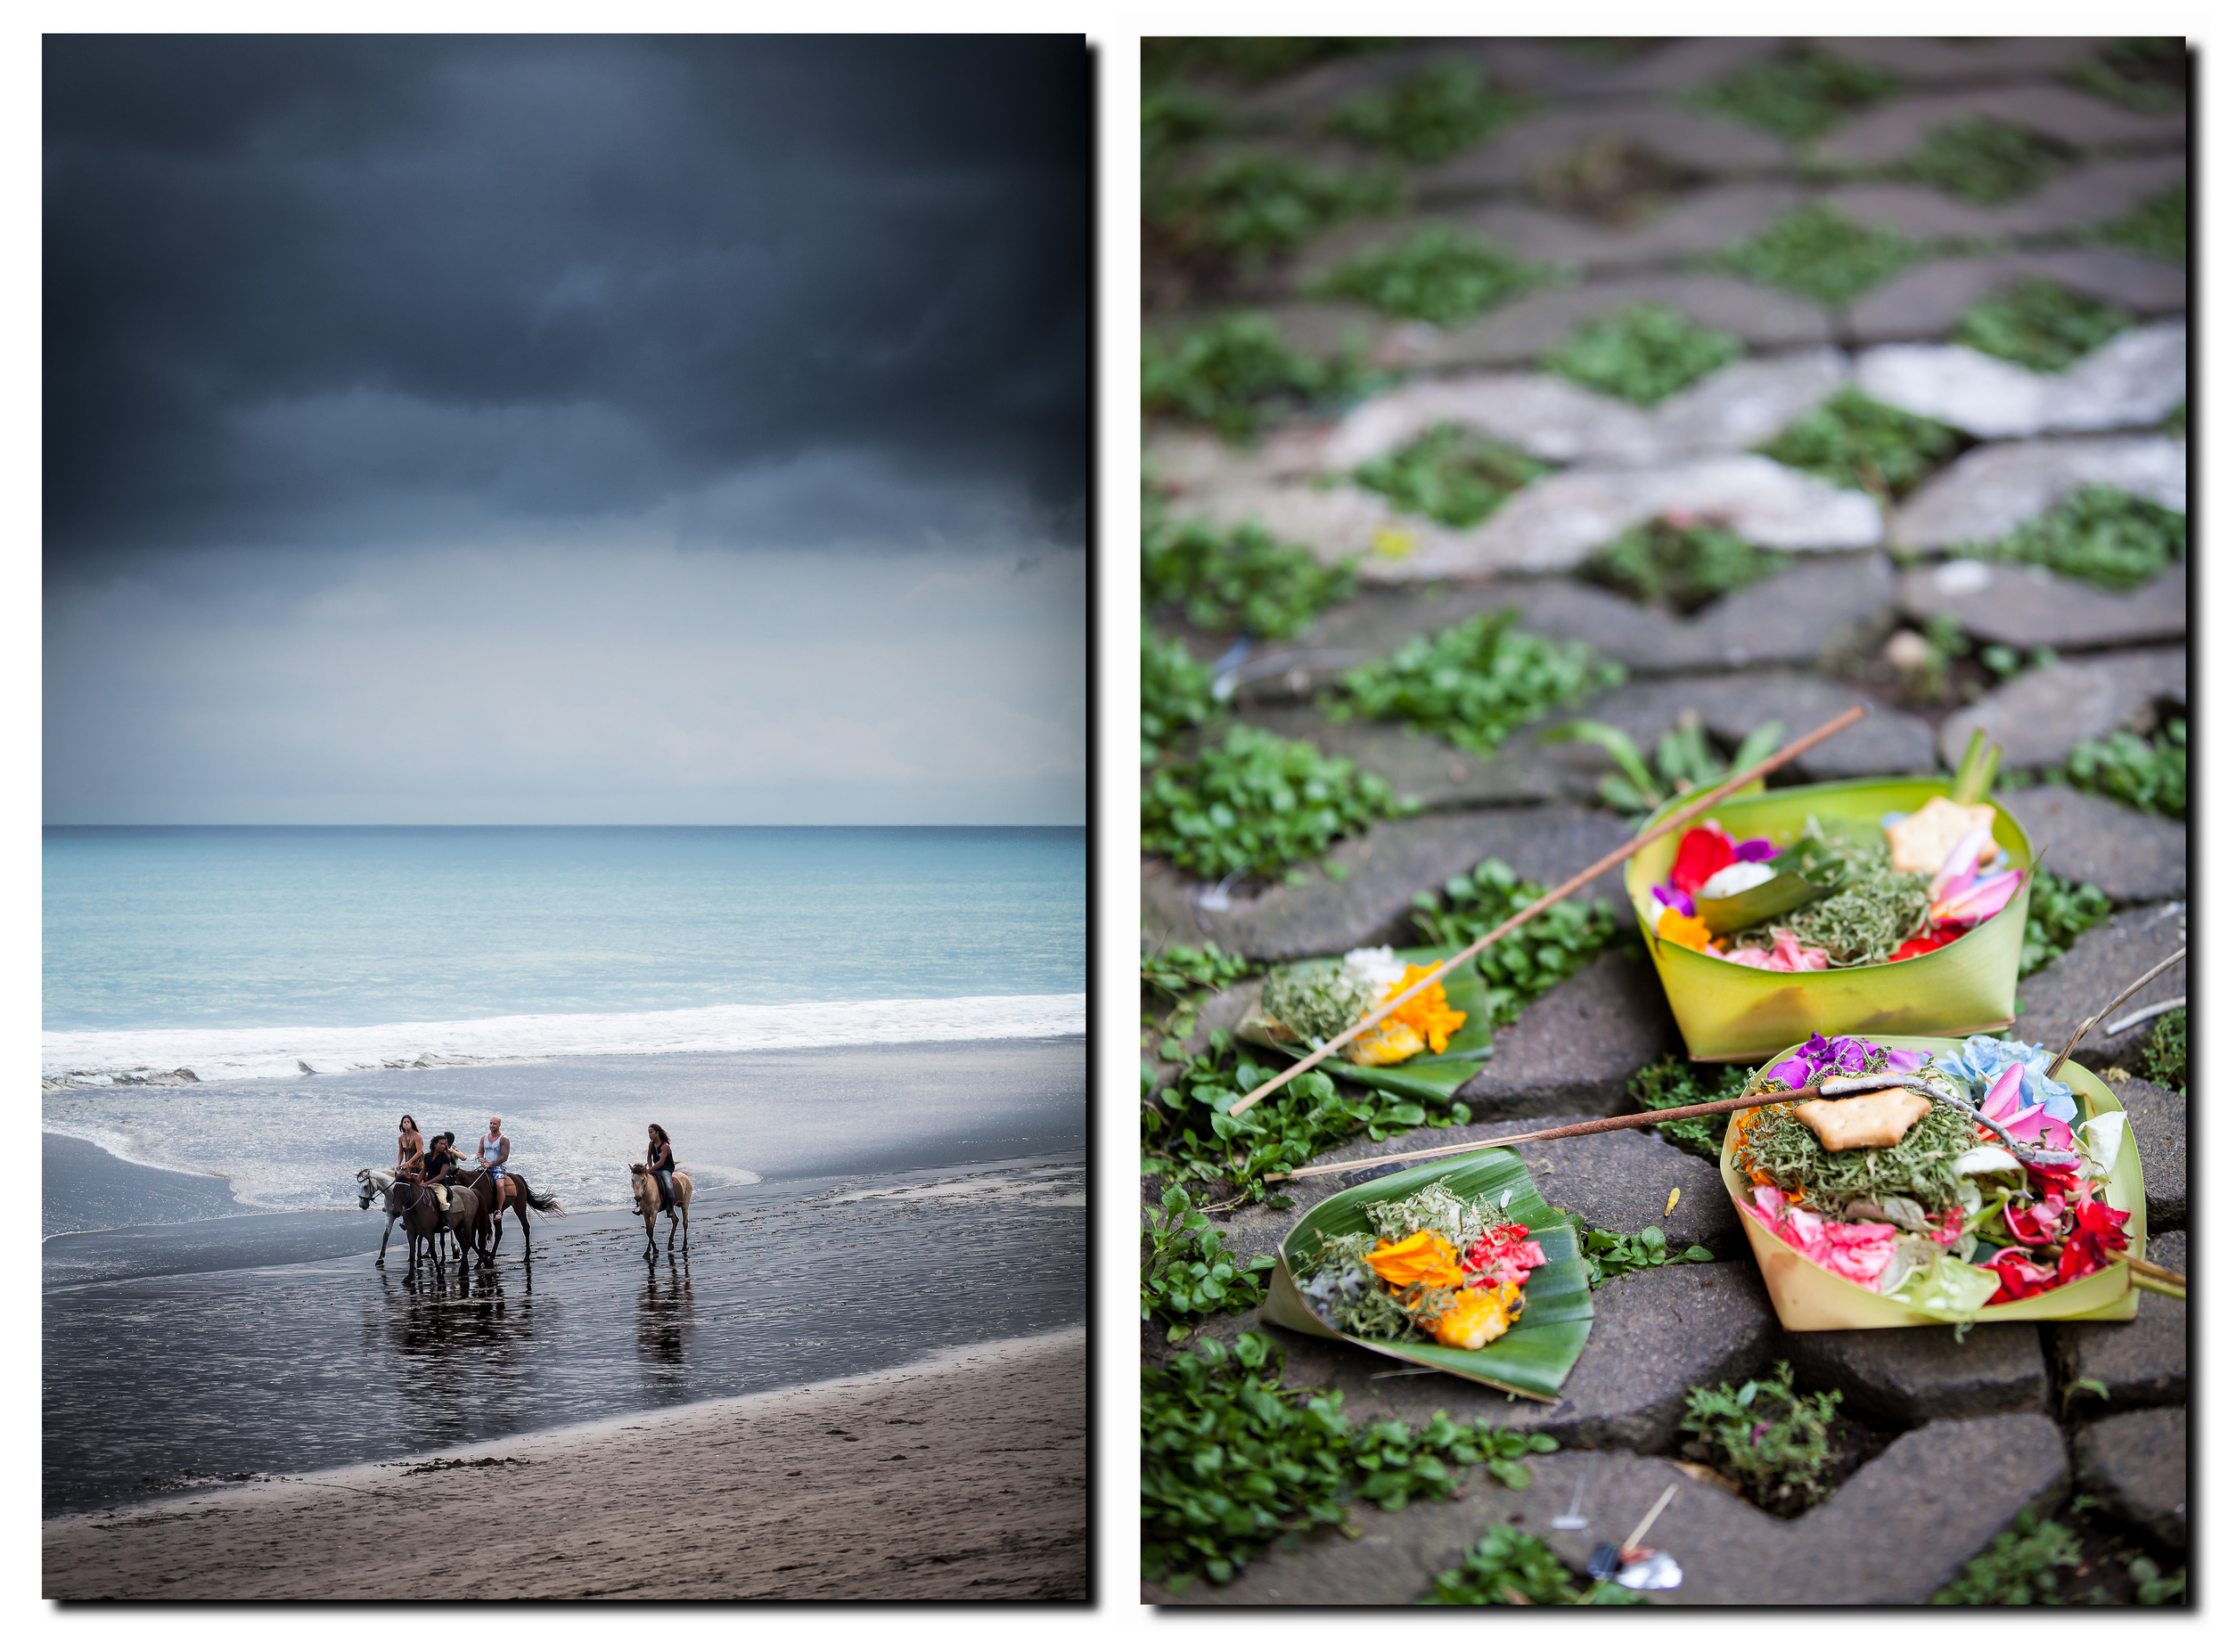 Horses on Seminyak beach & a traditional Hindu offering.